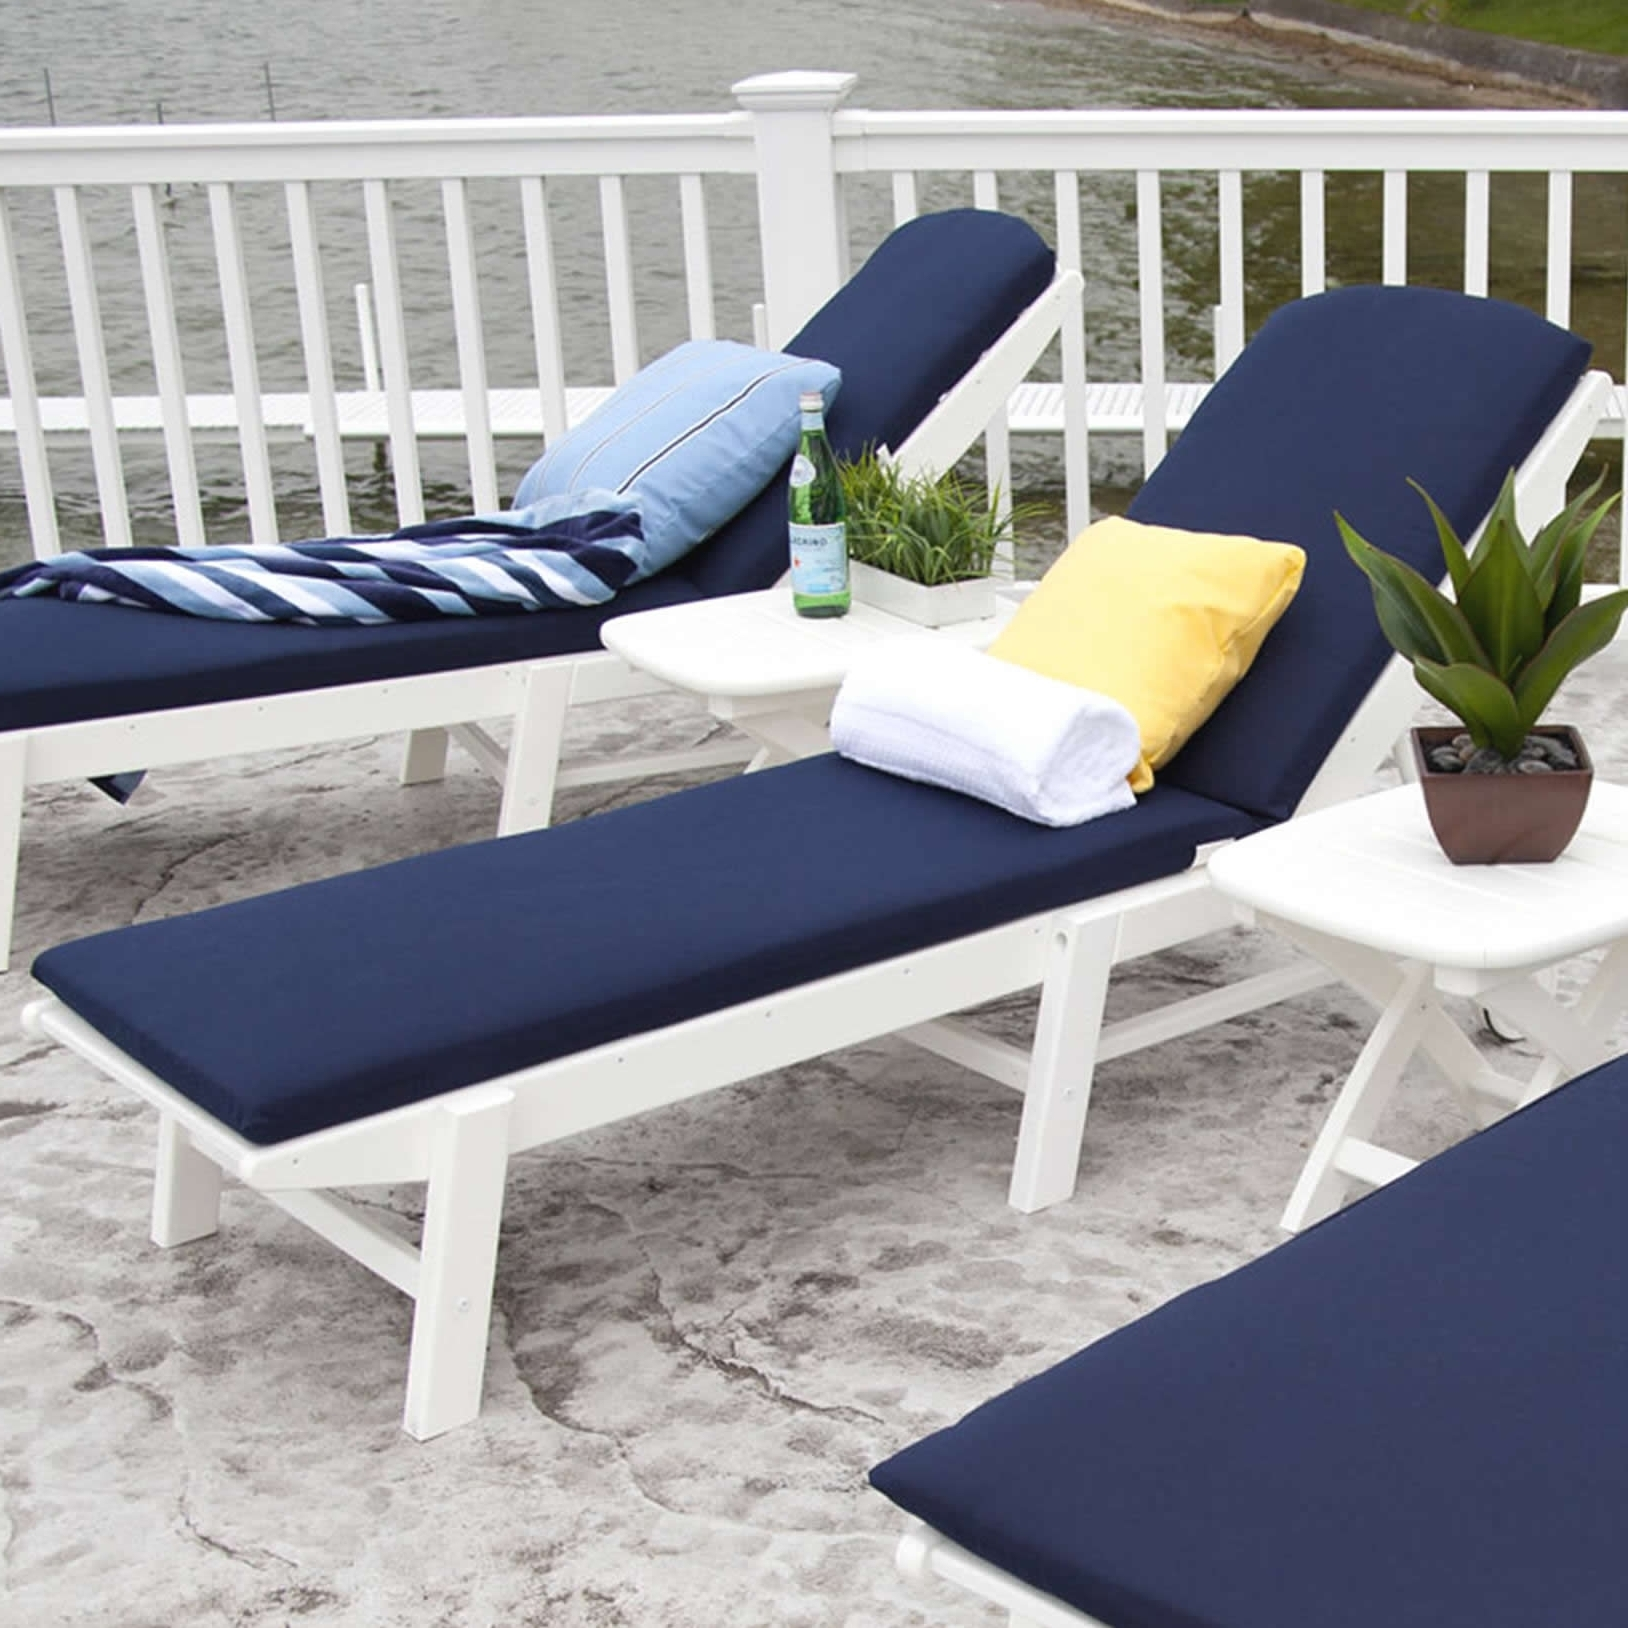 2017 Outdoor : Chaise Lounge Cushions Amazon Target Chaise Lounge Lowes In Target Outdoor Chaise Lounges (View 1 of 15)